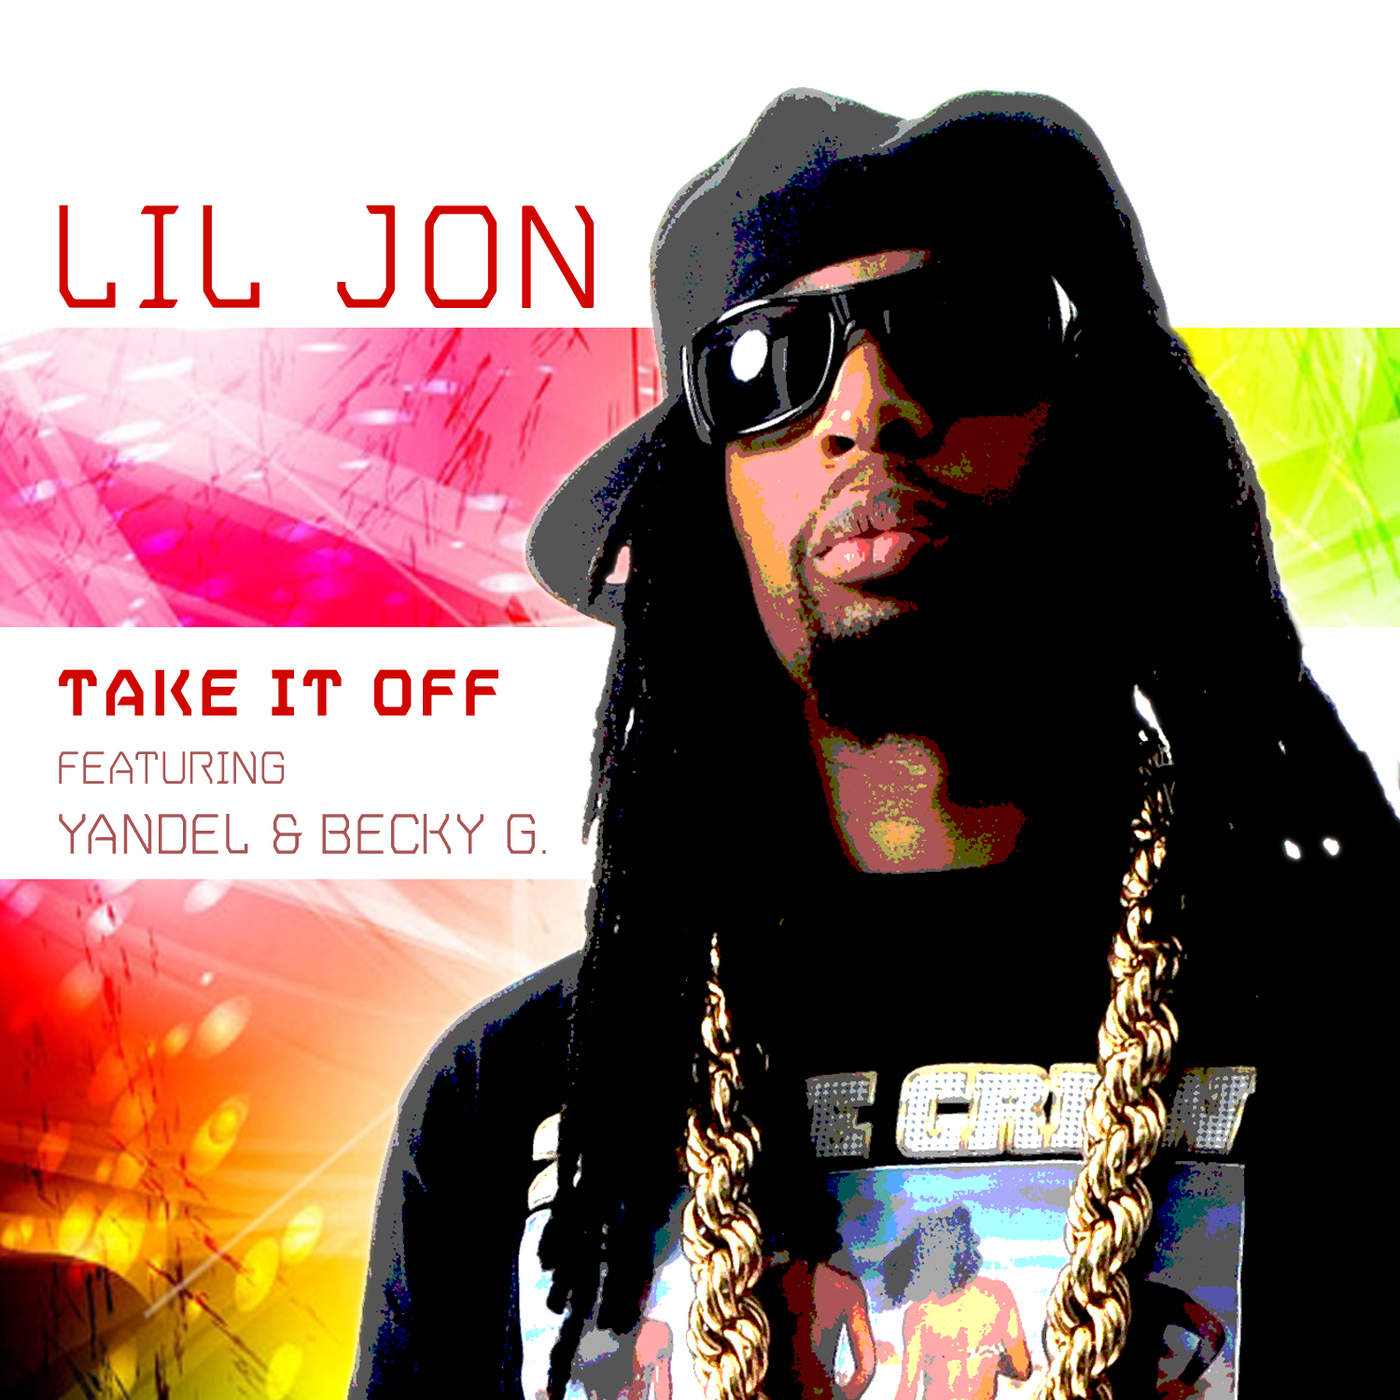 Lil Jon - Take It Off (Spanglish Version) [feat. Yandel & Becky G] - Single Cover